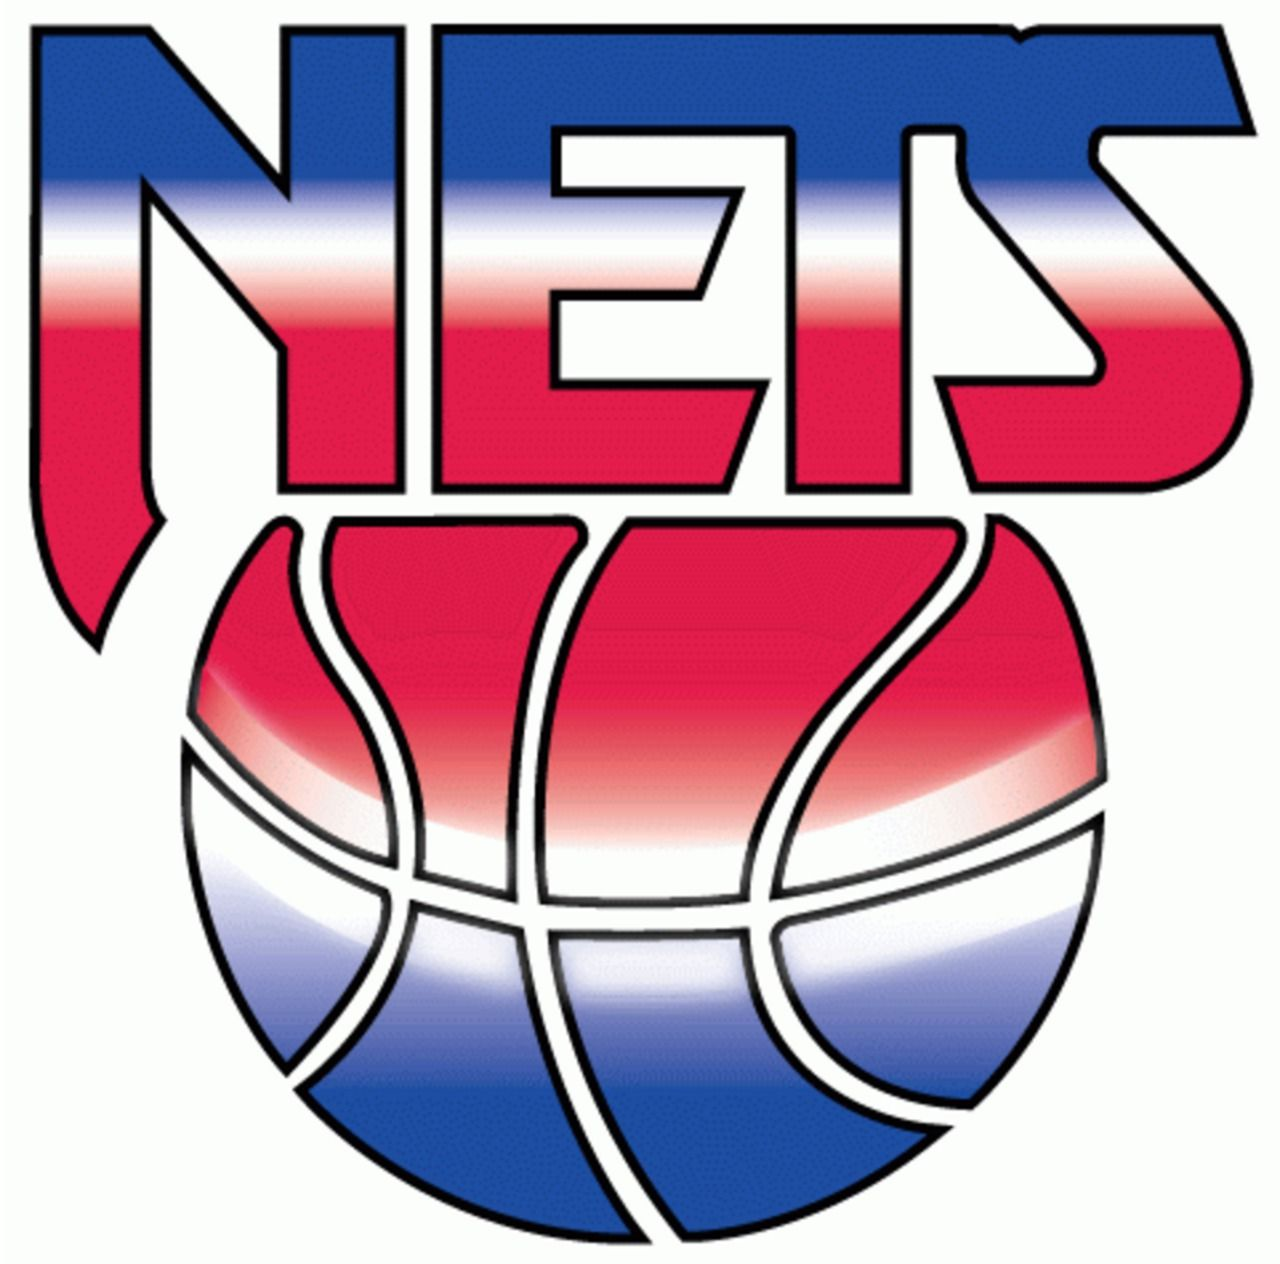 Old Basketball Logo - The best and worst NBA logos from each team | Deseret News